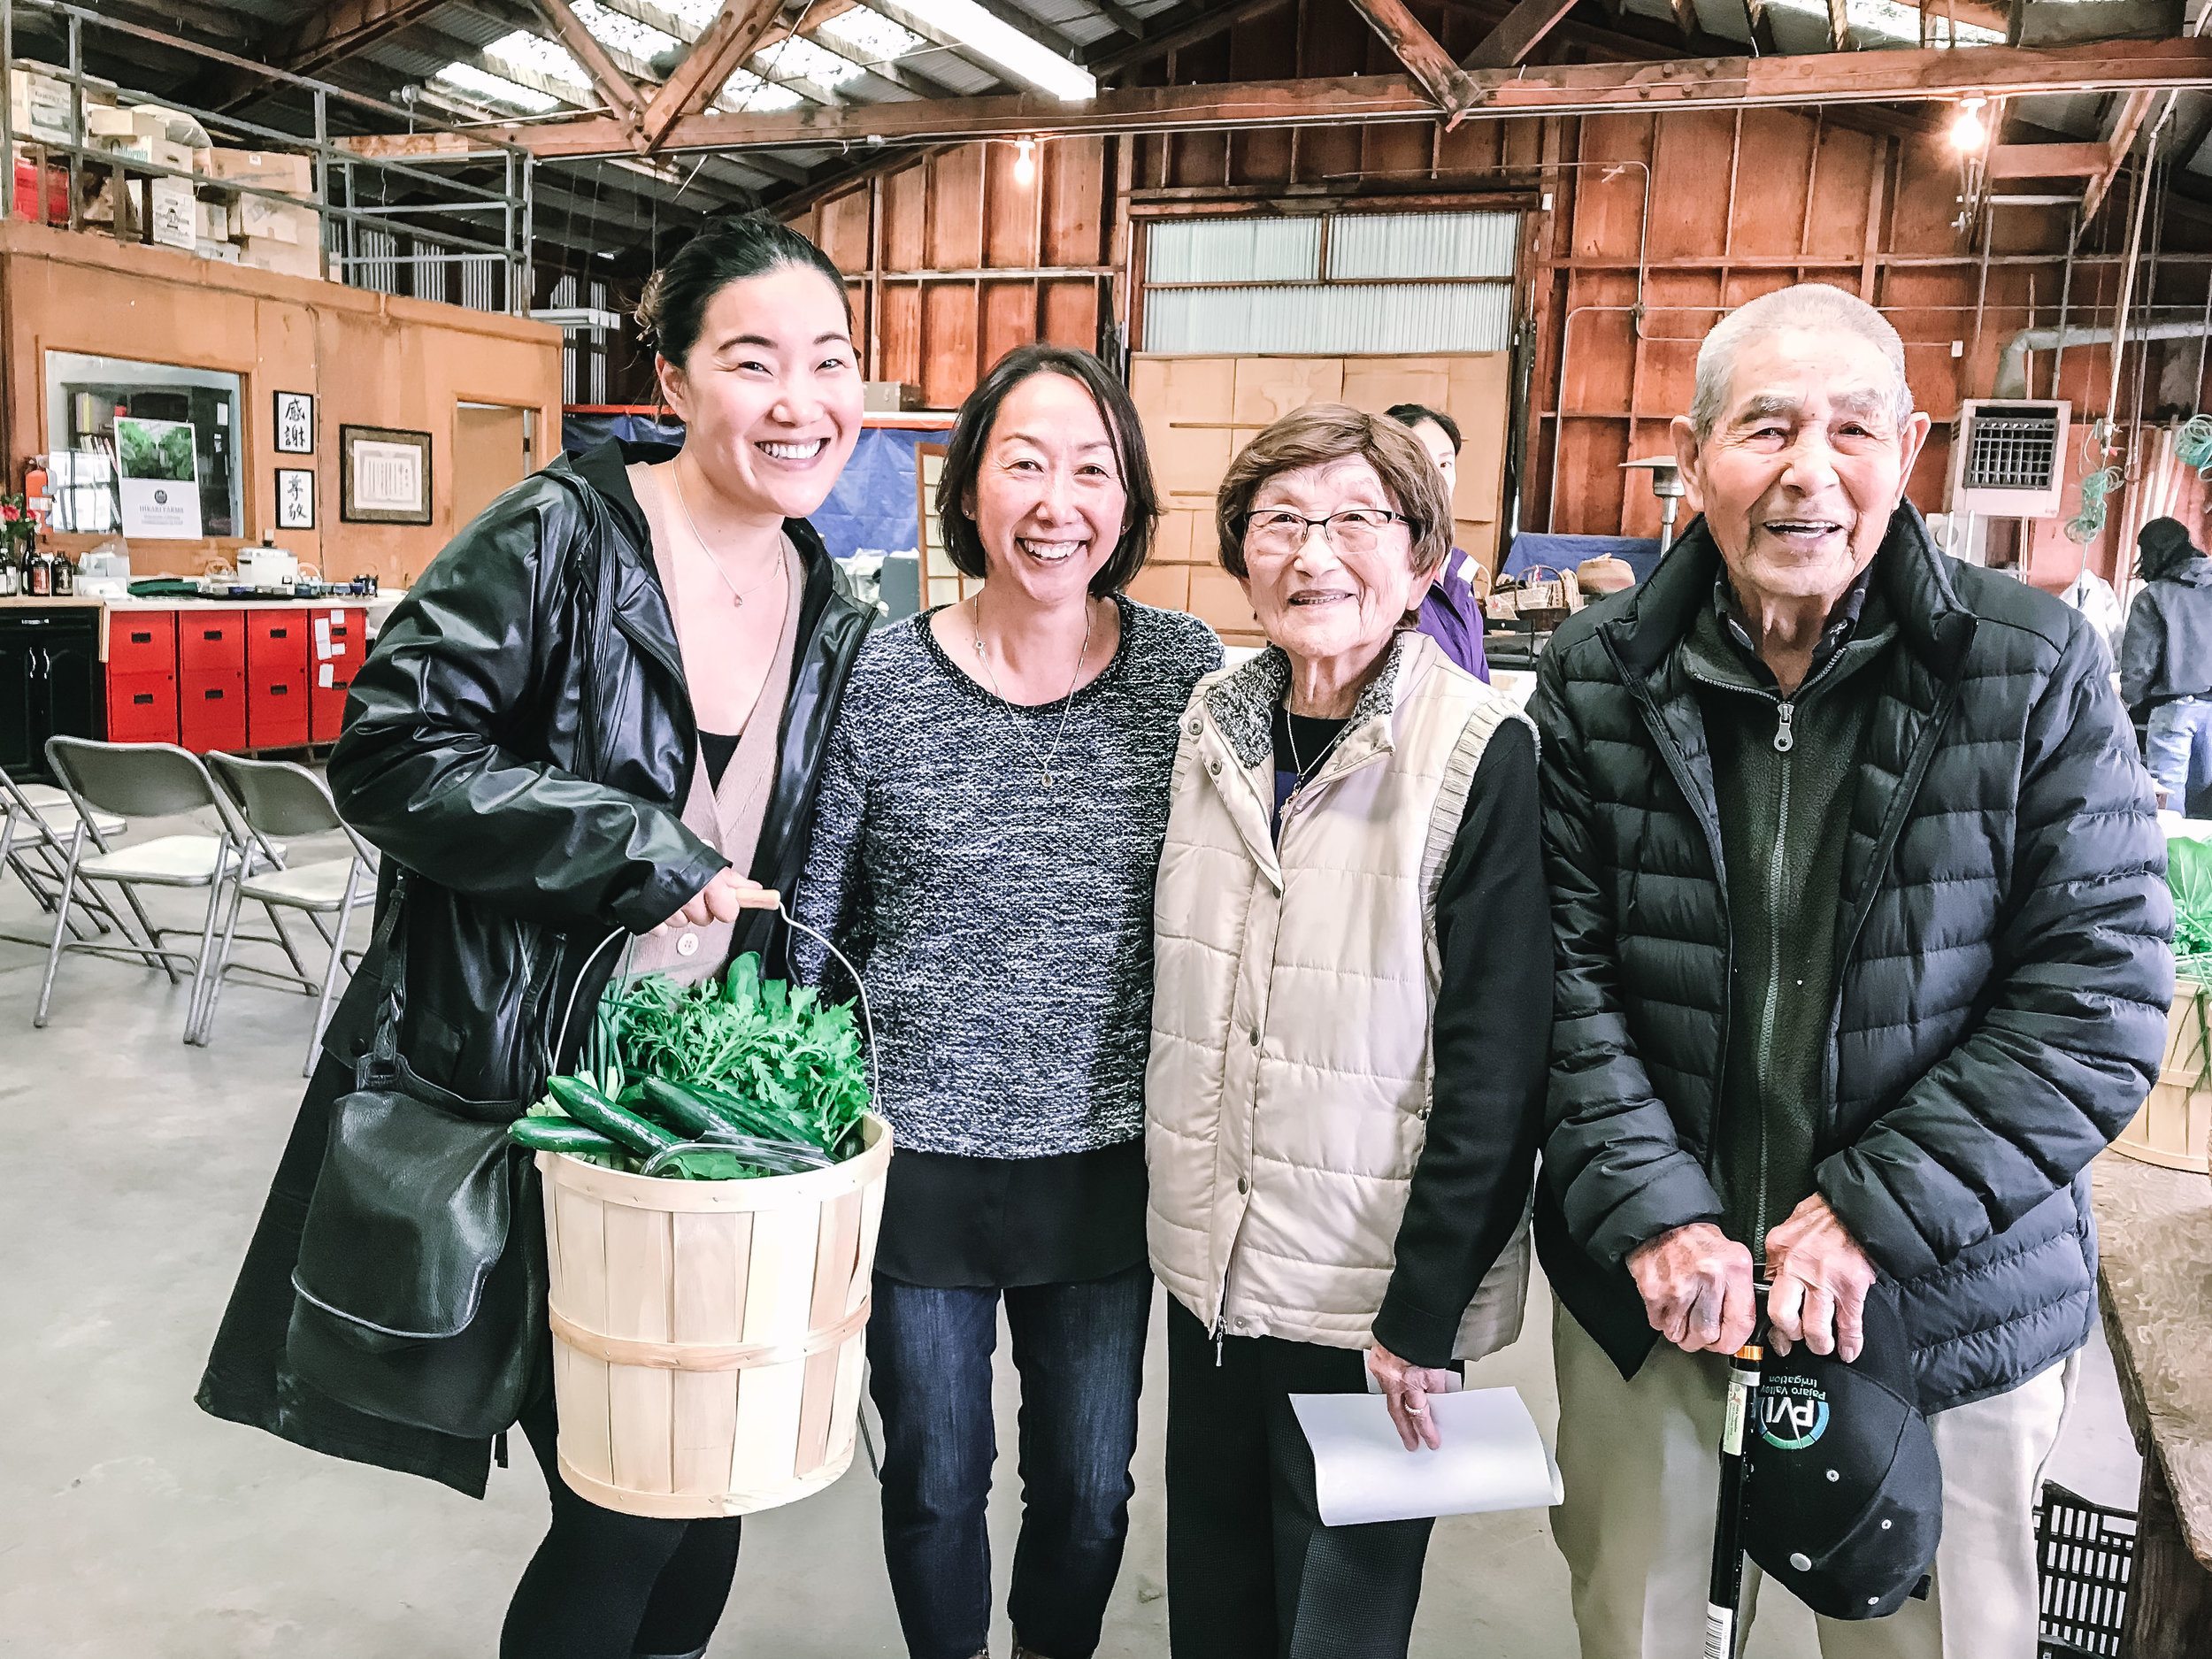 Janet and me with her parents, Mr. and Mrs. Nagamine, and the bountiful basket of farm produce they gifted me